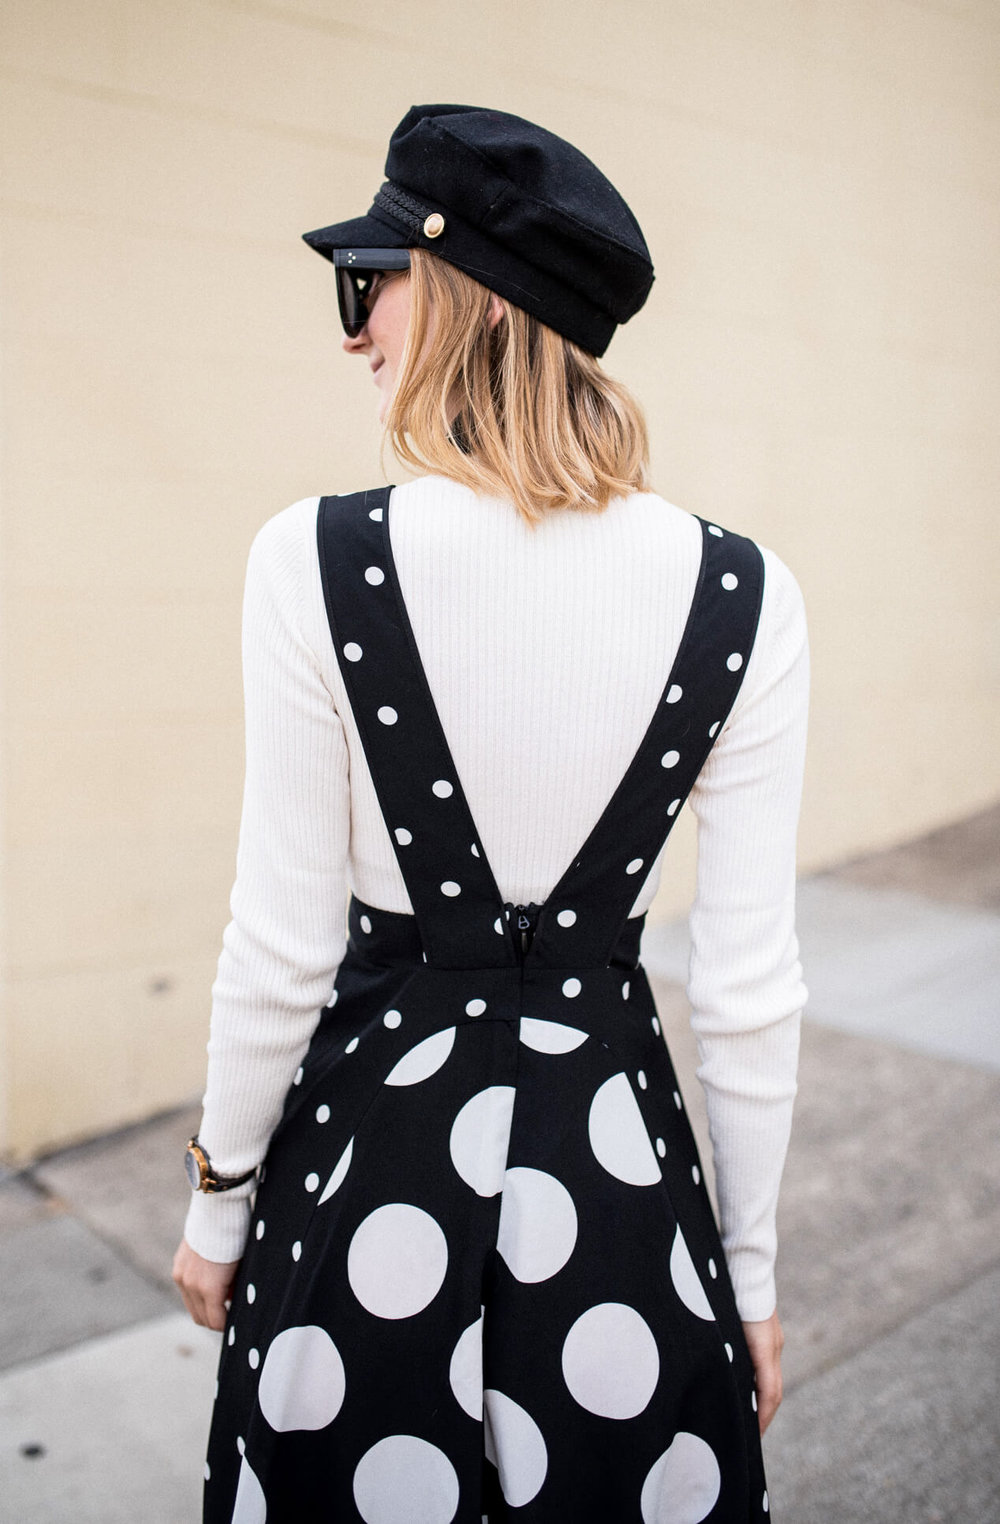 Black-White-PolkaDot-Look.jpg